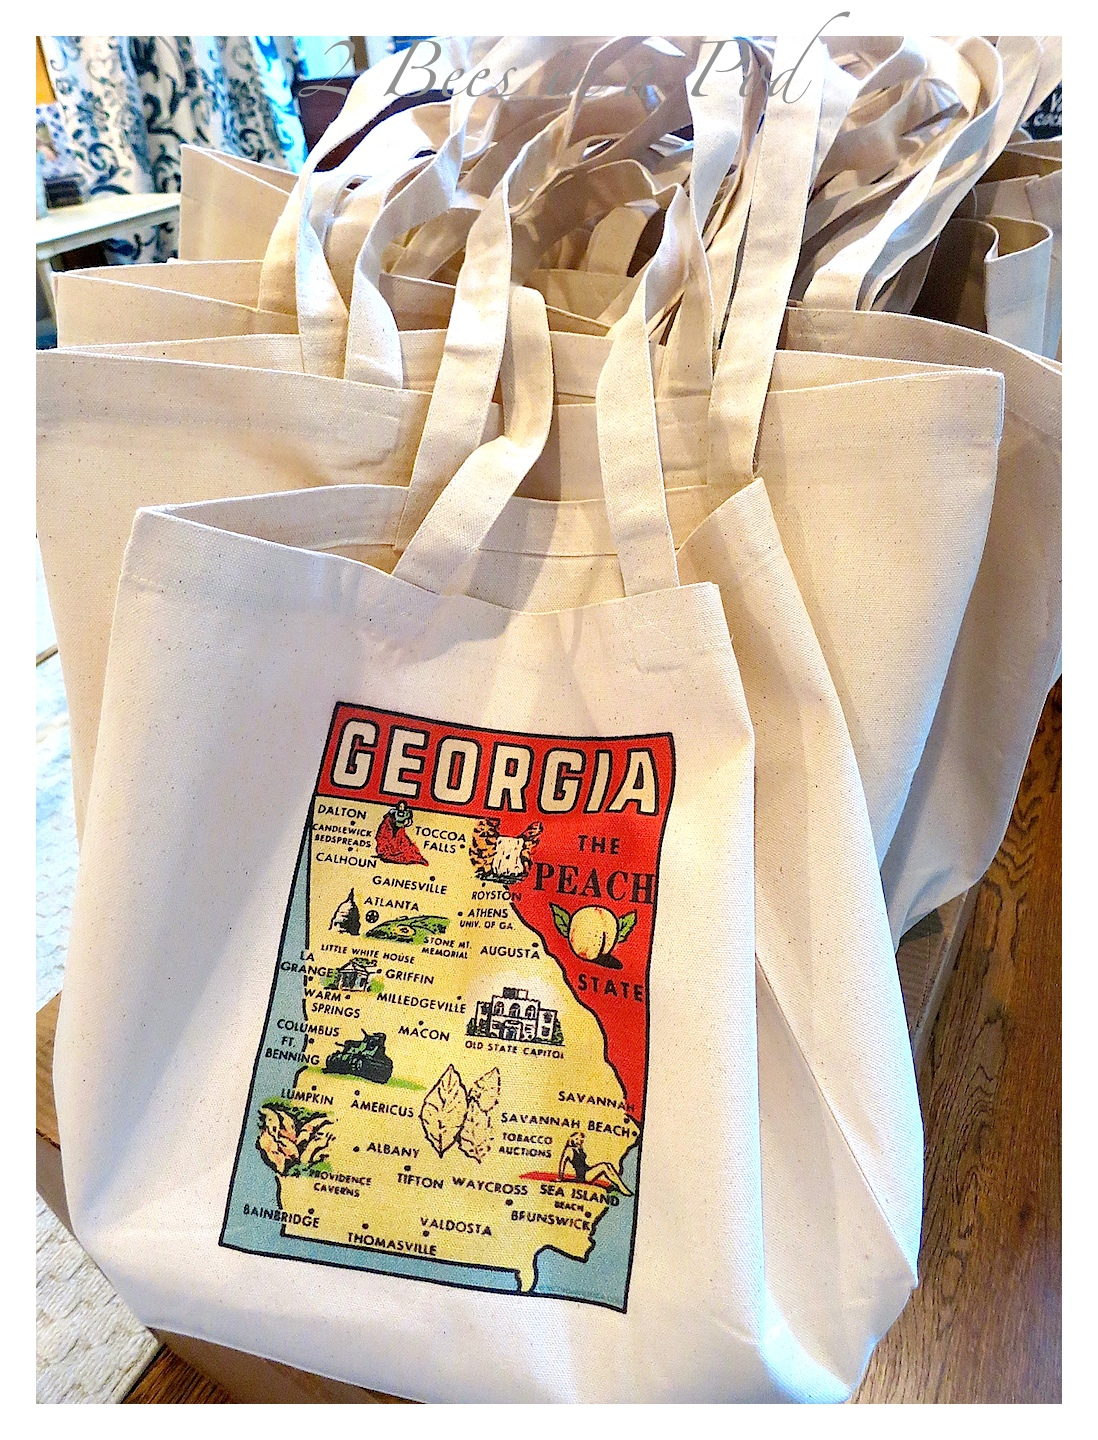 Wedding Guest Hotel Welcome Bags - We definitely wanted a vintage, Southern collection. Canvas bags with a vintage map of Georgia. Inside the bags: mimi Coke bottles, Jack Daniels minis, Nutty Bars, our favorite Nora Mill grits, Vintage Atlanta thank you postcard.